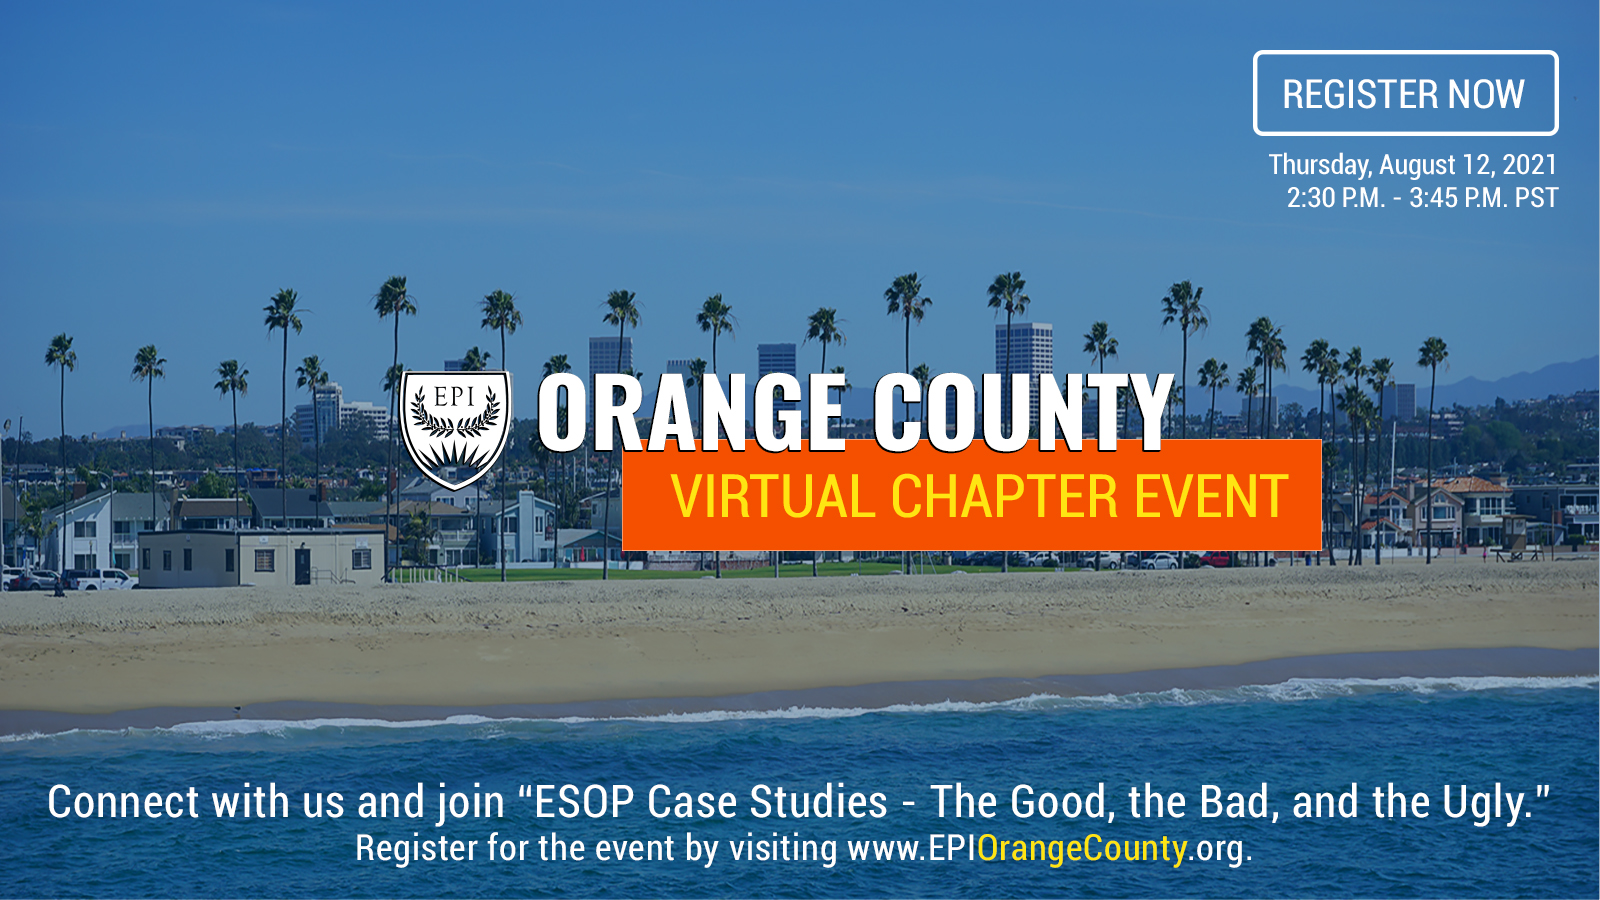 ESOP Case Studies - The Good, the Bad and the Ugly